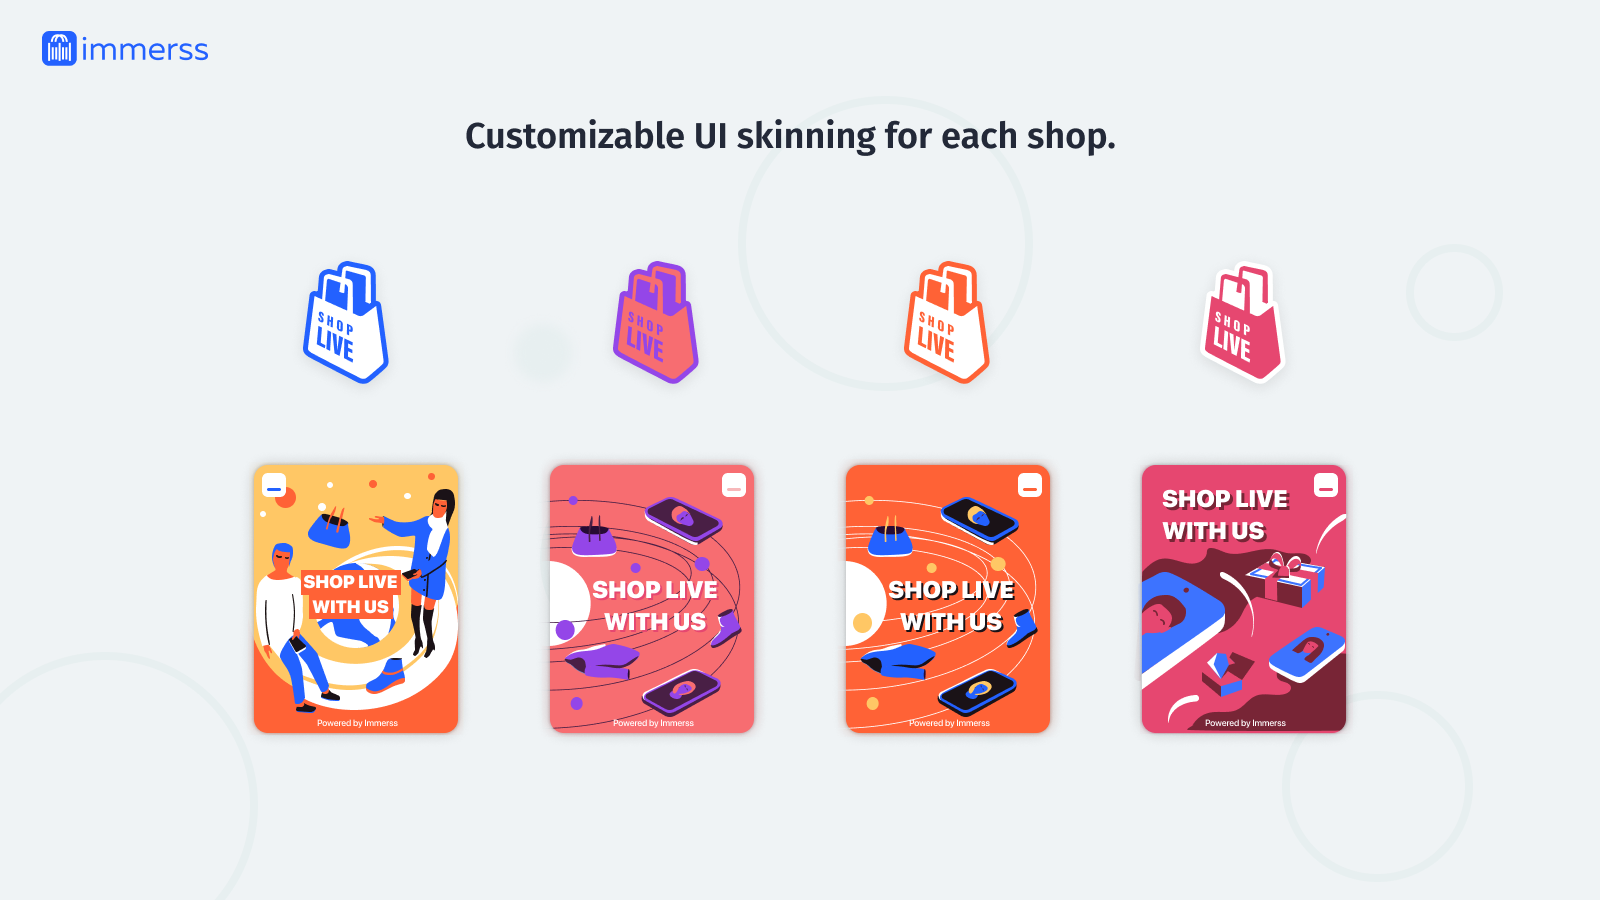 Customizable UI skinning for each shop